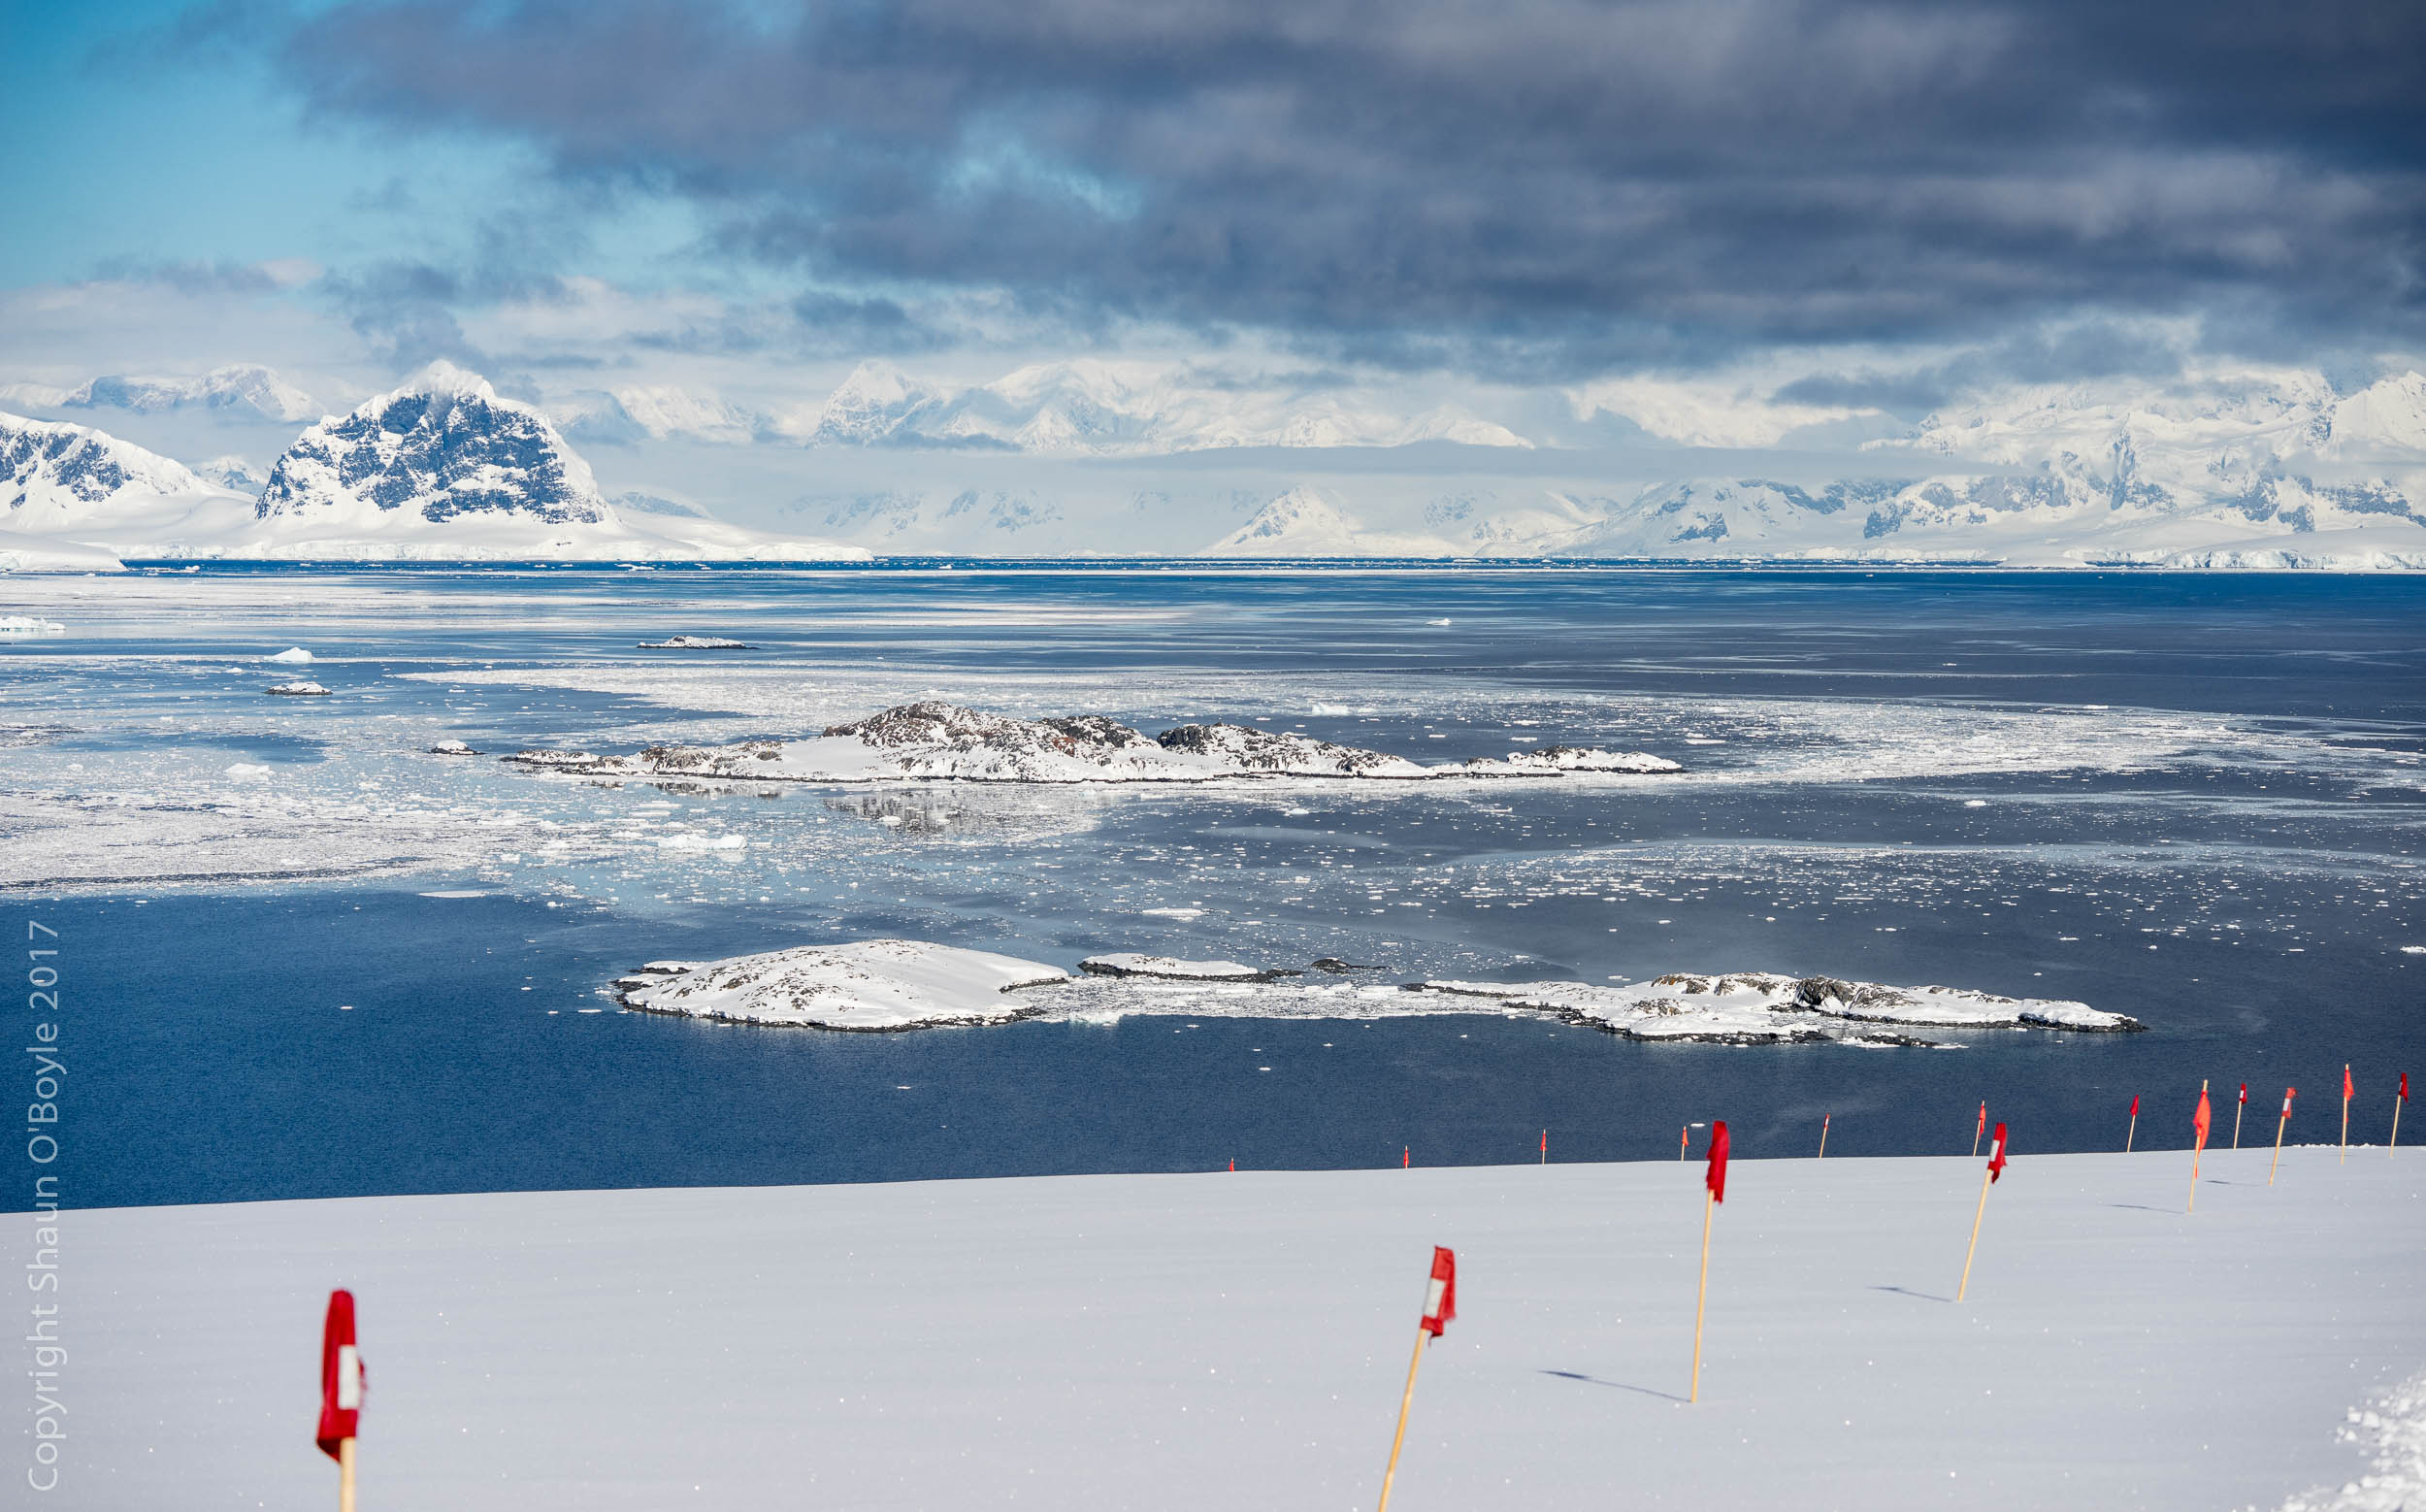 Looking East across the Bismark Strait to the Antarctic Penninsula